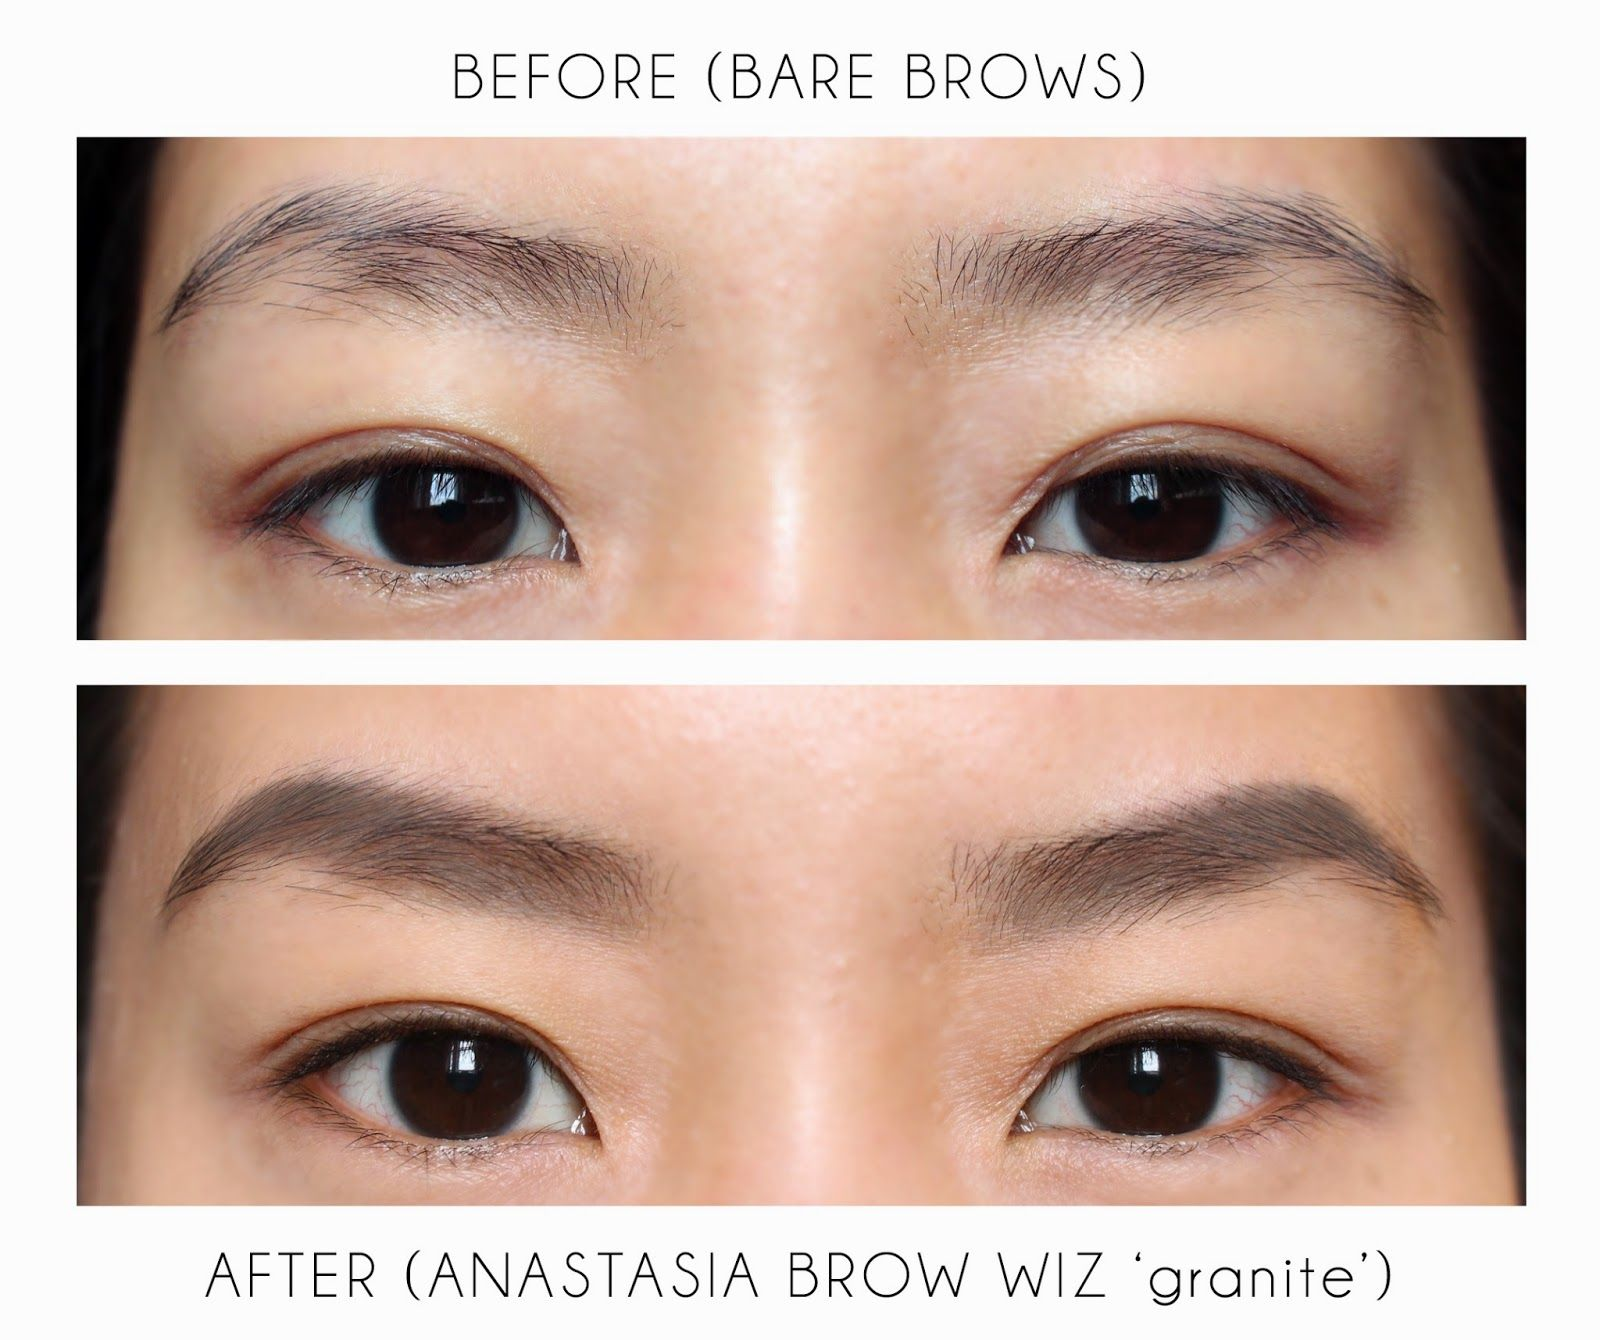 Anastasia Brow Wiz Eyebrow Pencil in 'granite' is a great match ...